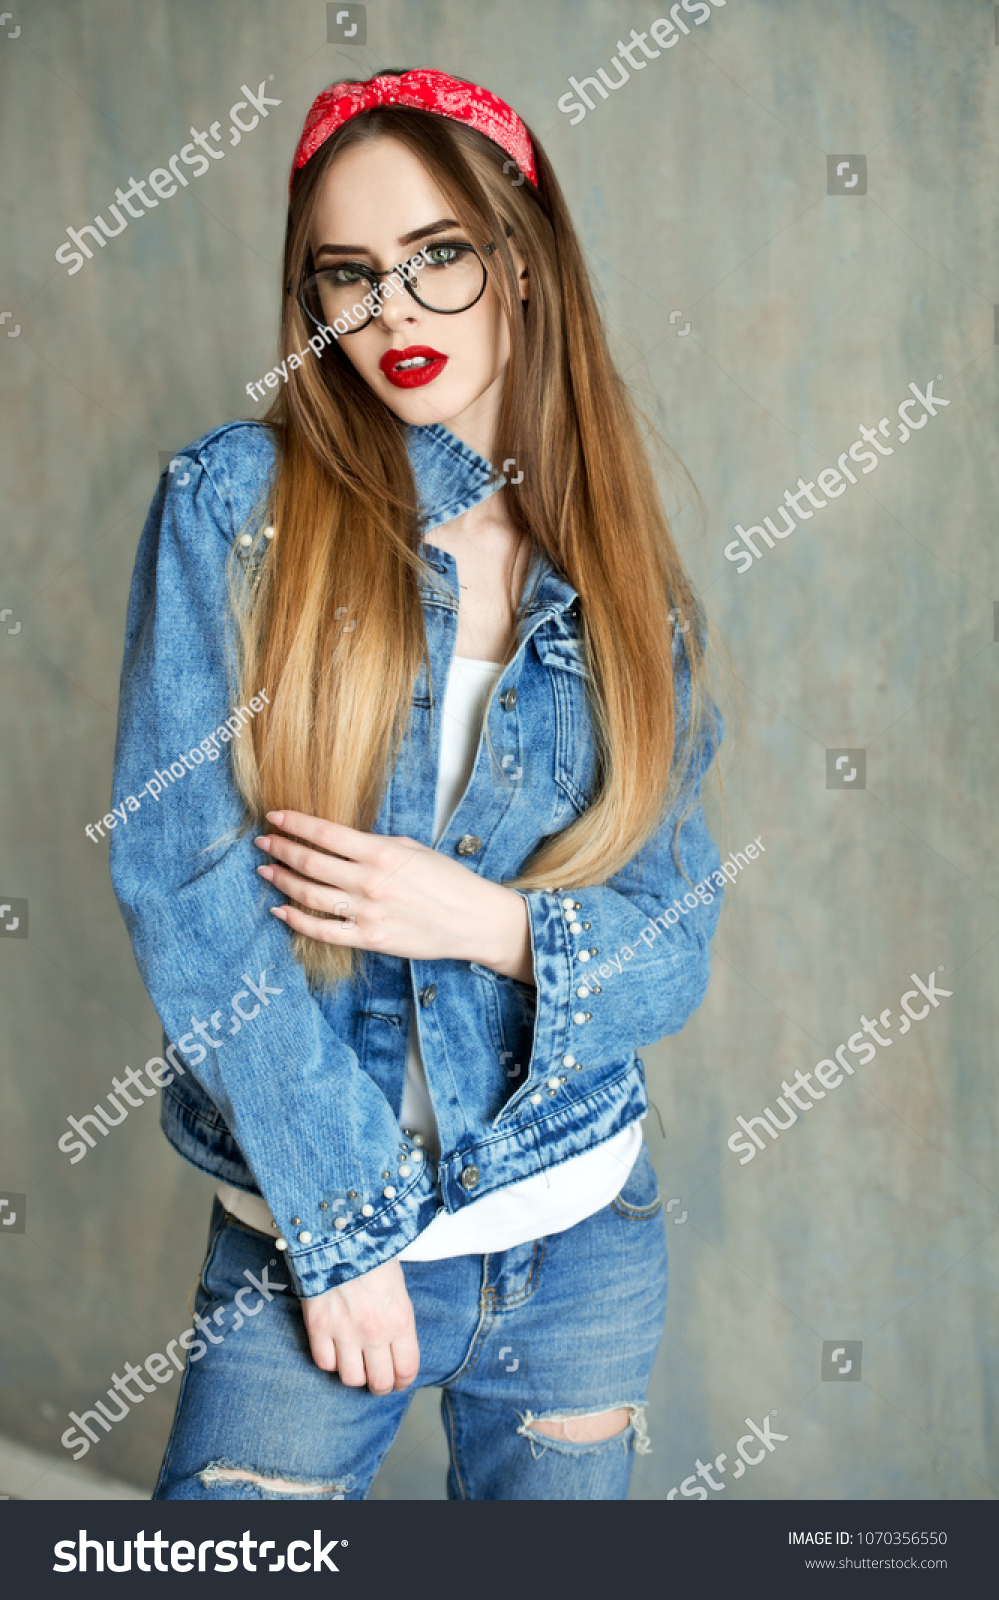 c9fa9af592 Beautiful woman in glasses and red bandana and jeans shirt. Beautiful girl  with pretty smile